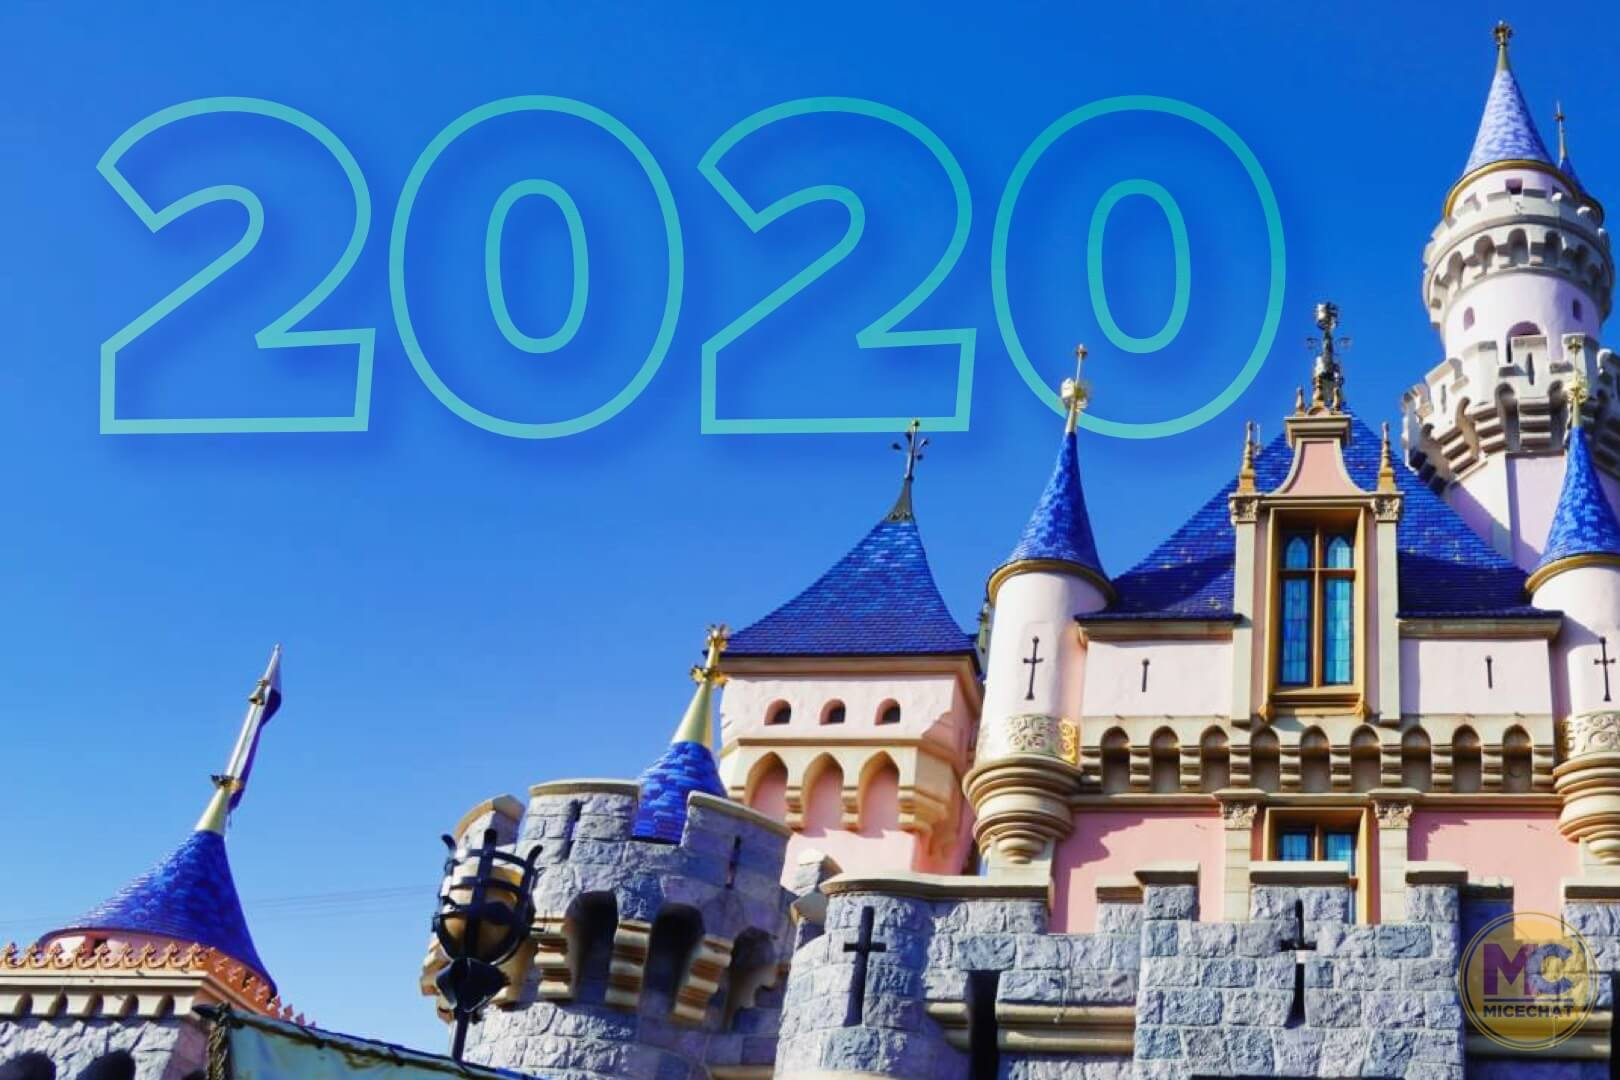 Disney Christmas Special 2021 Reviews Micechat Dateline Disneyland Disneyland Resort Features Holidays 2020 Disneyland Year In Review 2020 So Much More Than A Shutdown